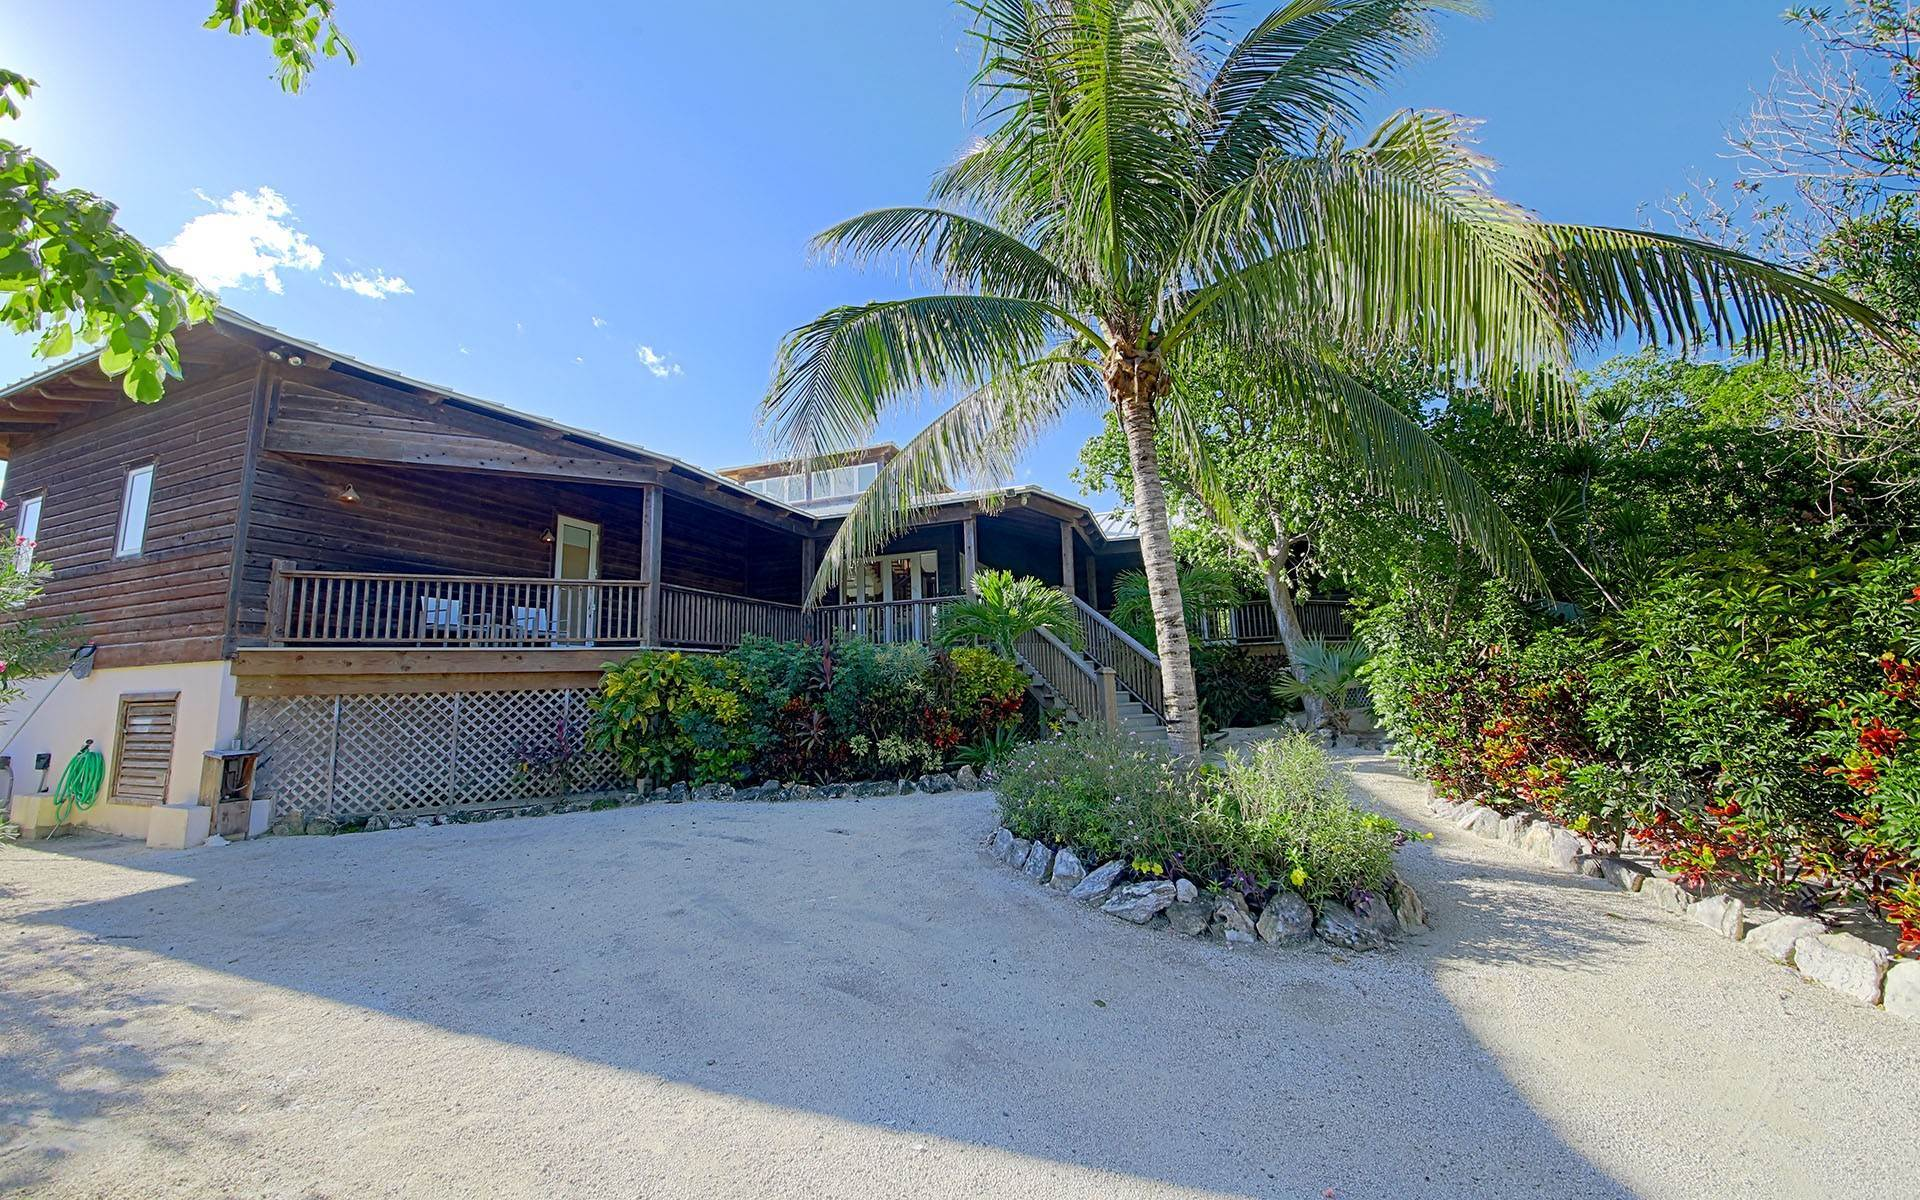 Single Family Homes for Sale at Green Turtle - Winding Bay - MLS 31750 Winding Bay, Abaco, Bahamas